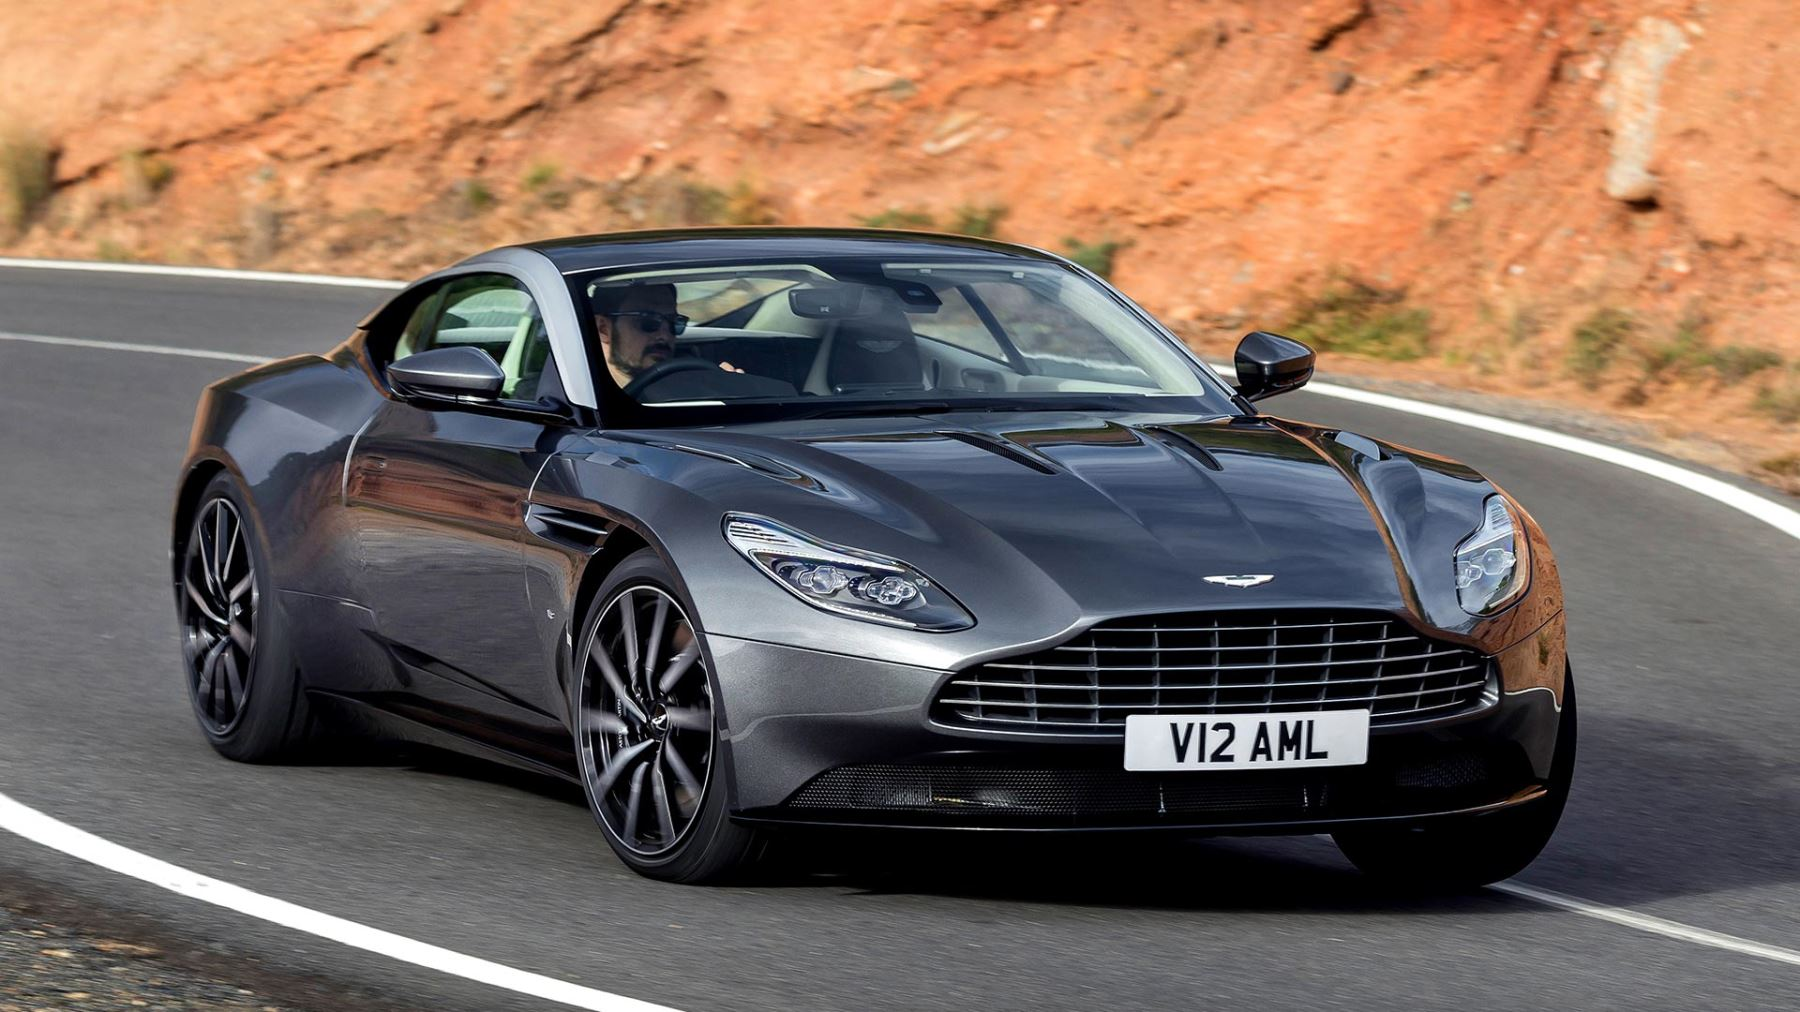 Aston Martin DB11 V12 with 5 years free servicing* image 9